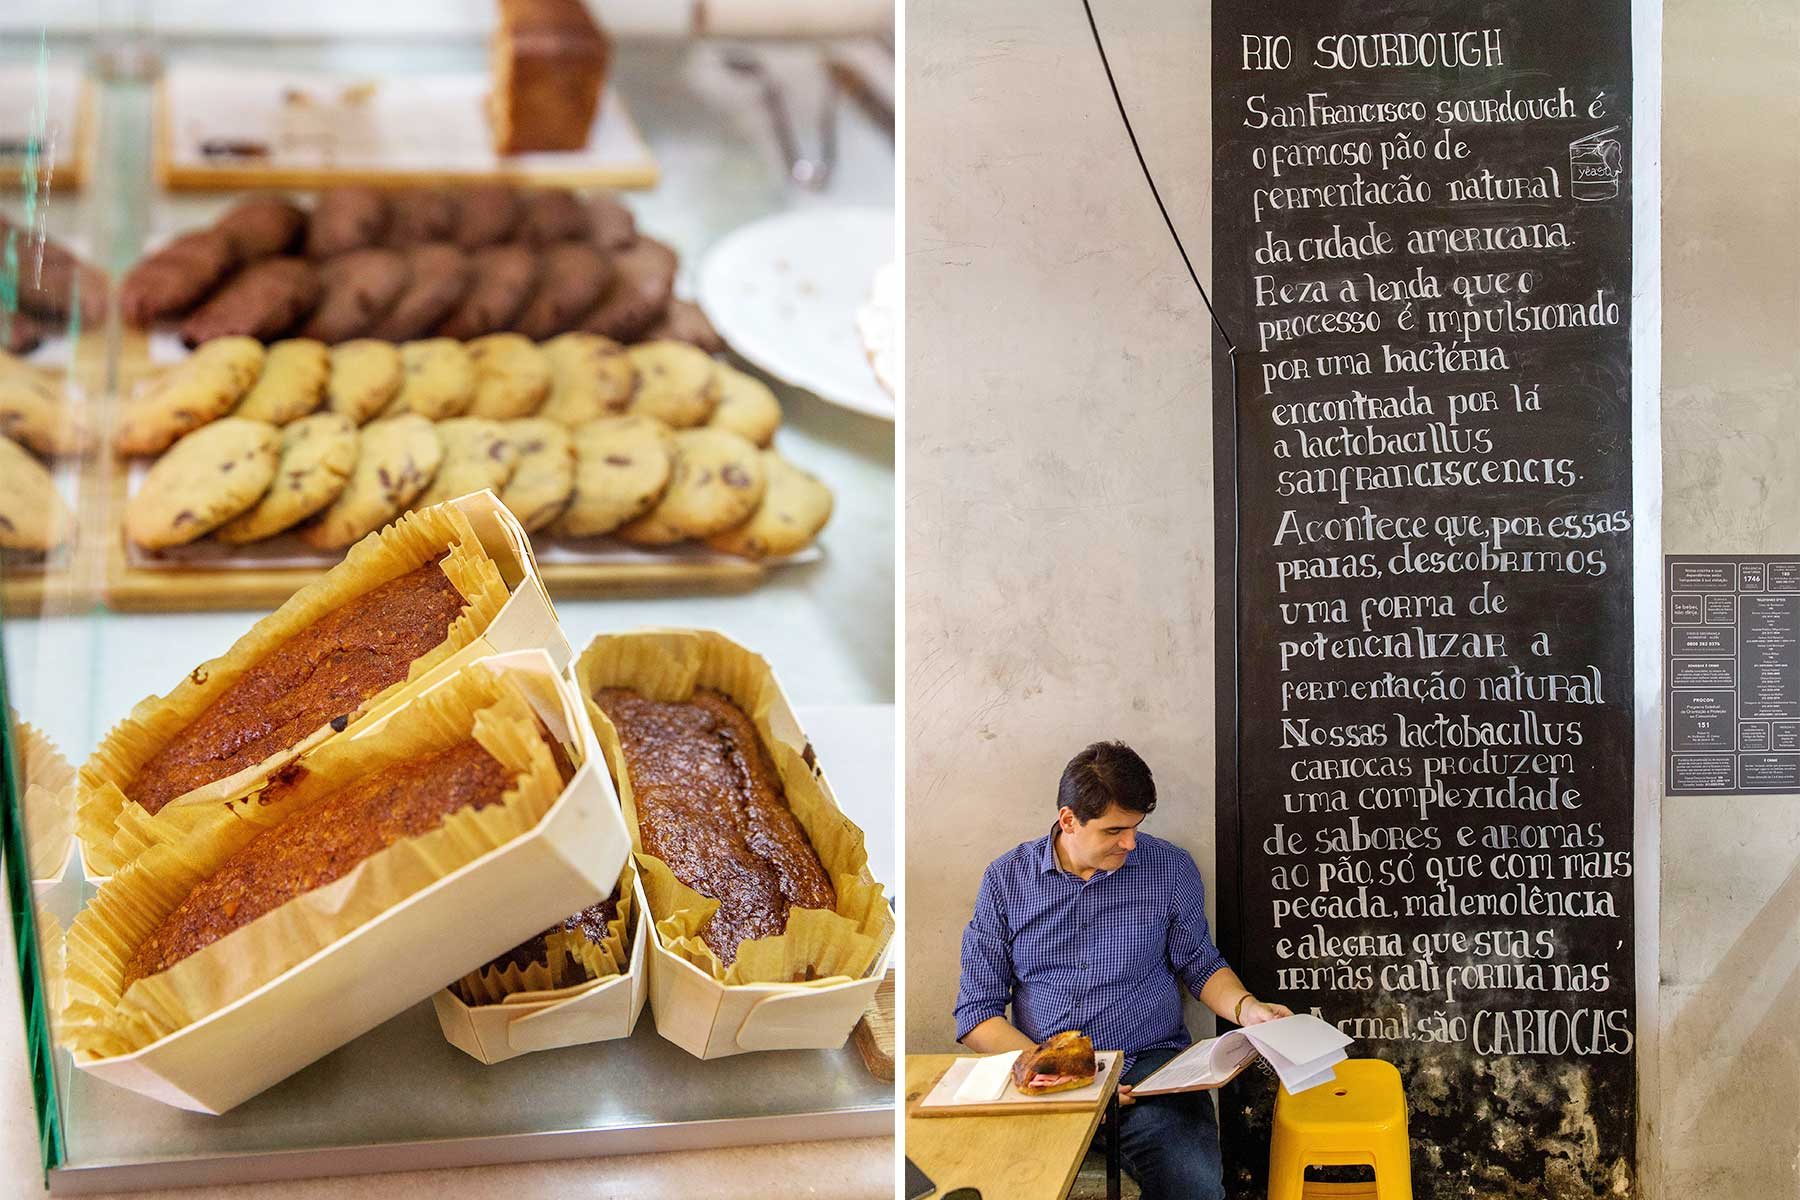 Two scenes from Slow Bakery, in Rio de Janeiro, Brazil: treats on display, and man reading the newspaper on the terrace